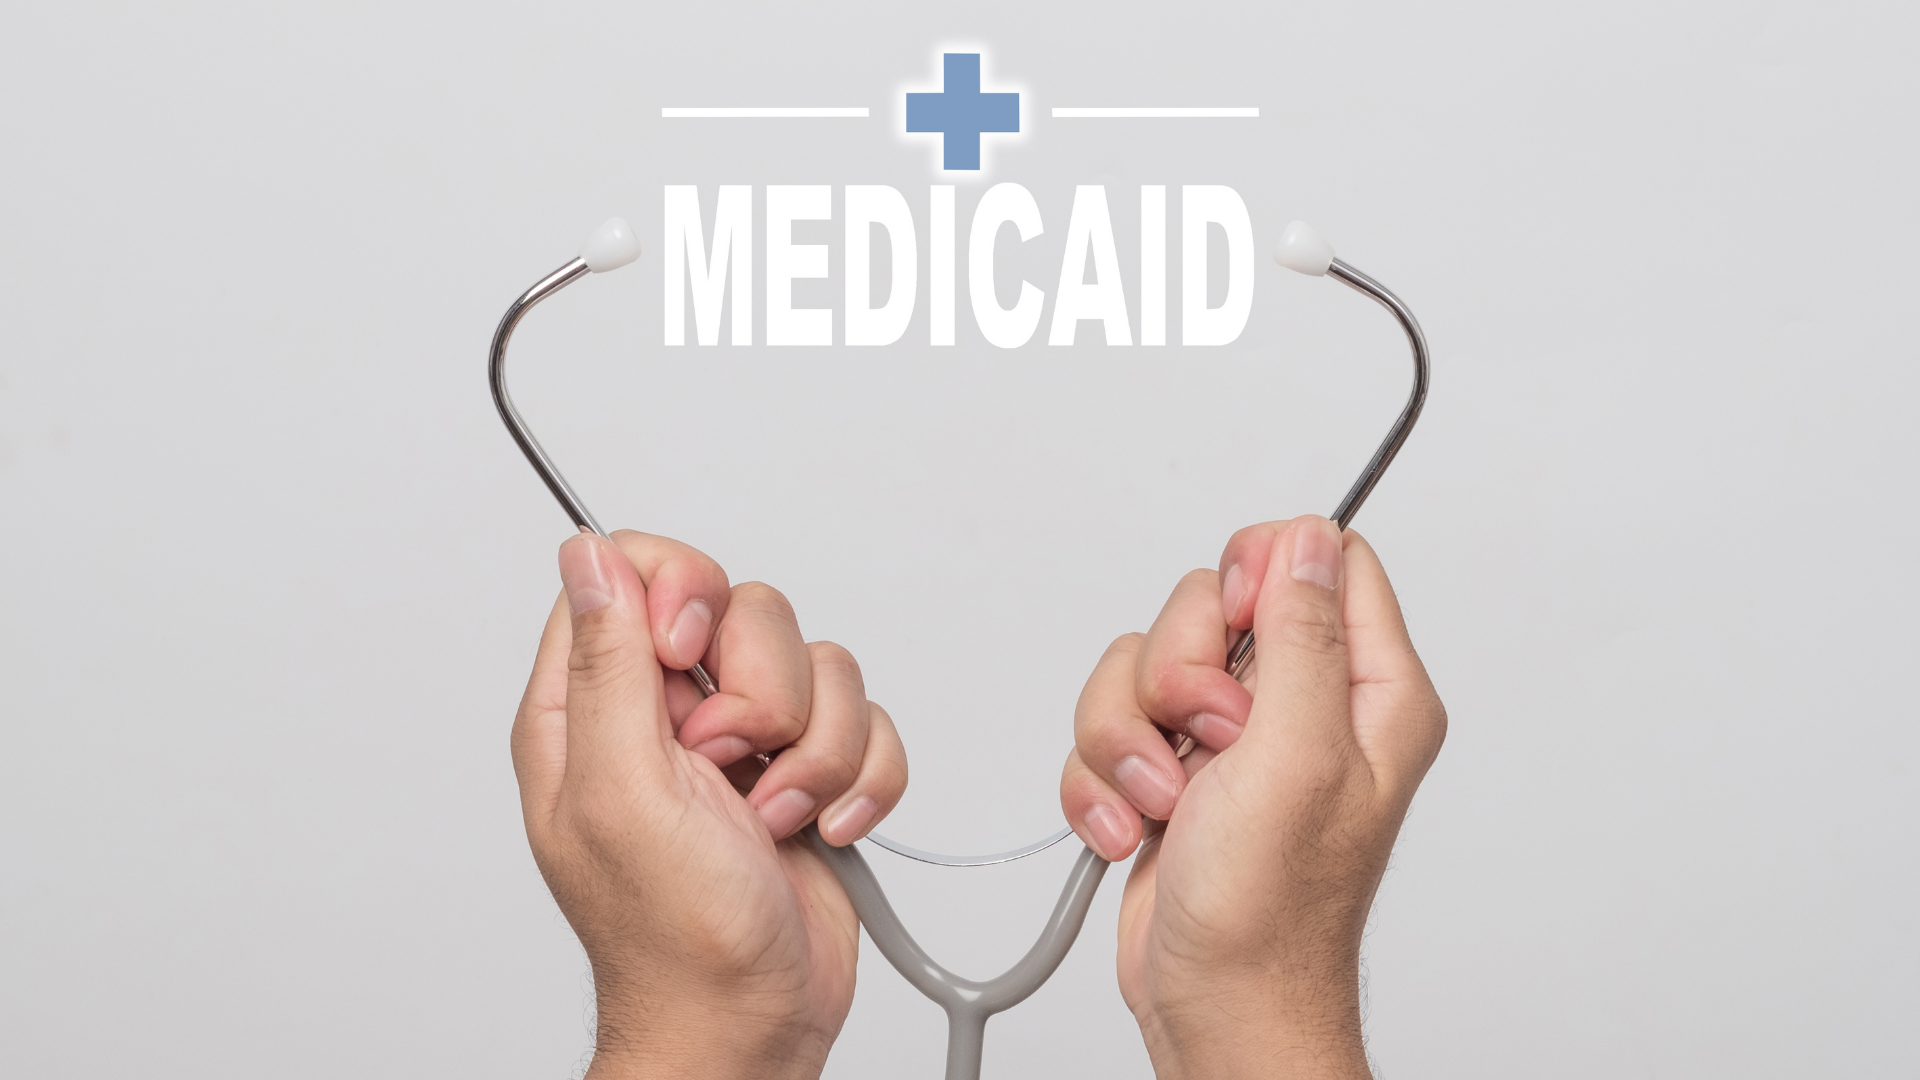 Medicaid Image With Hands And A Stethascope